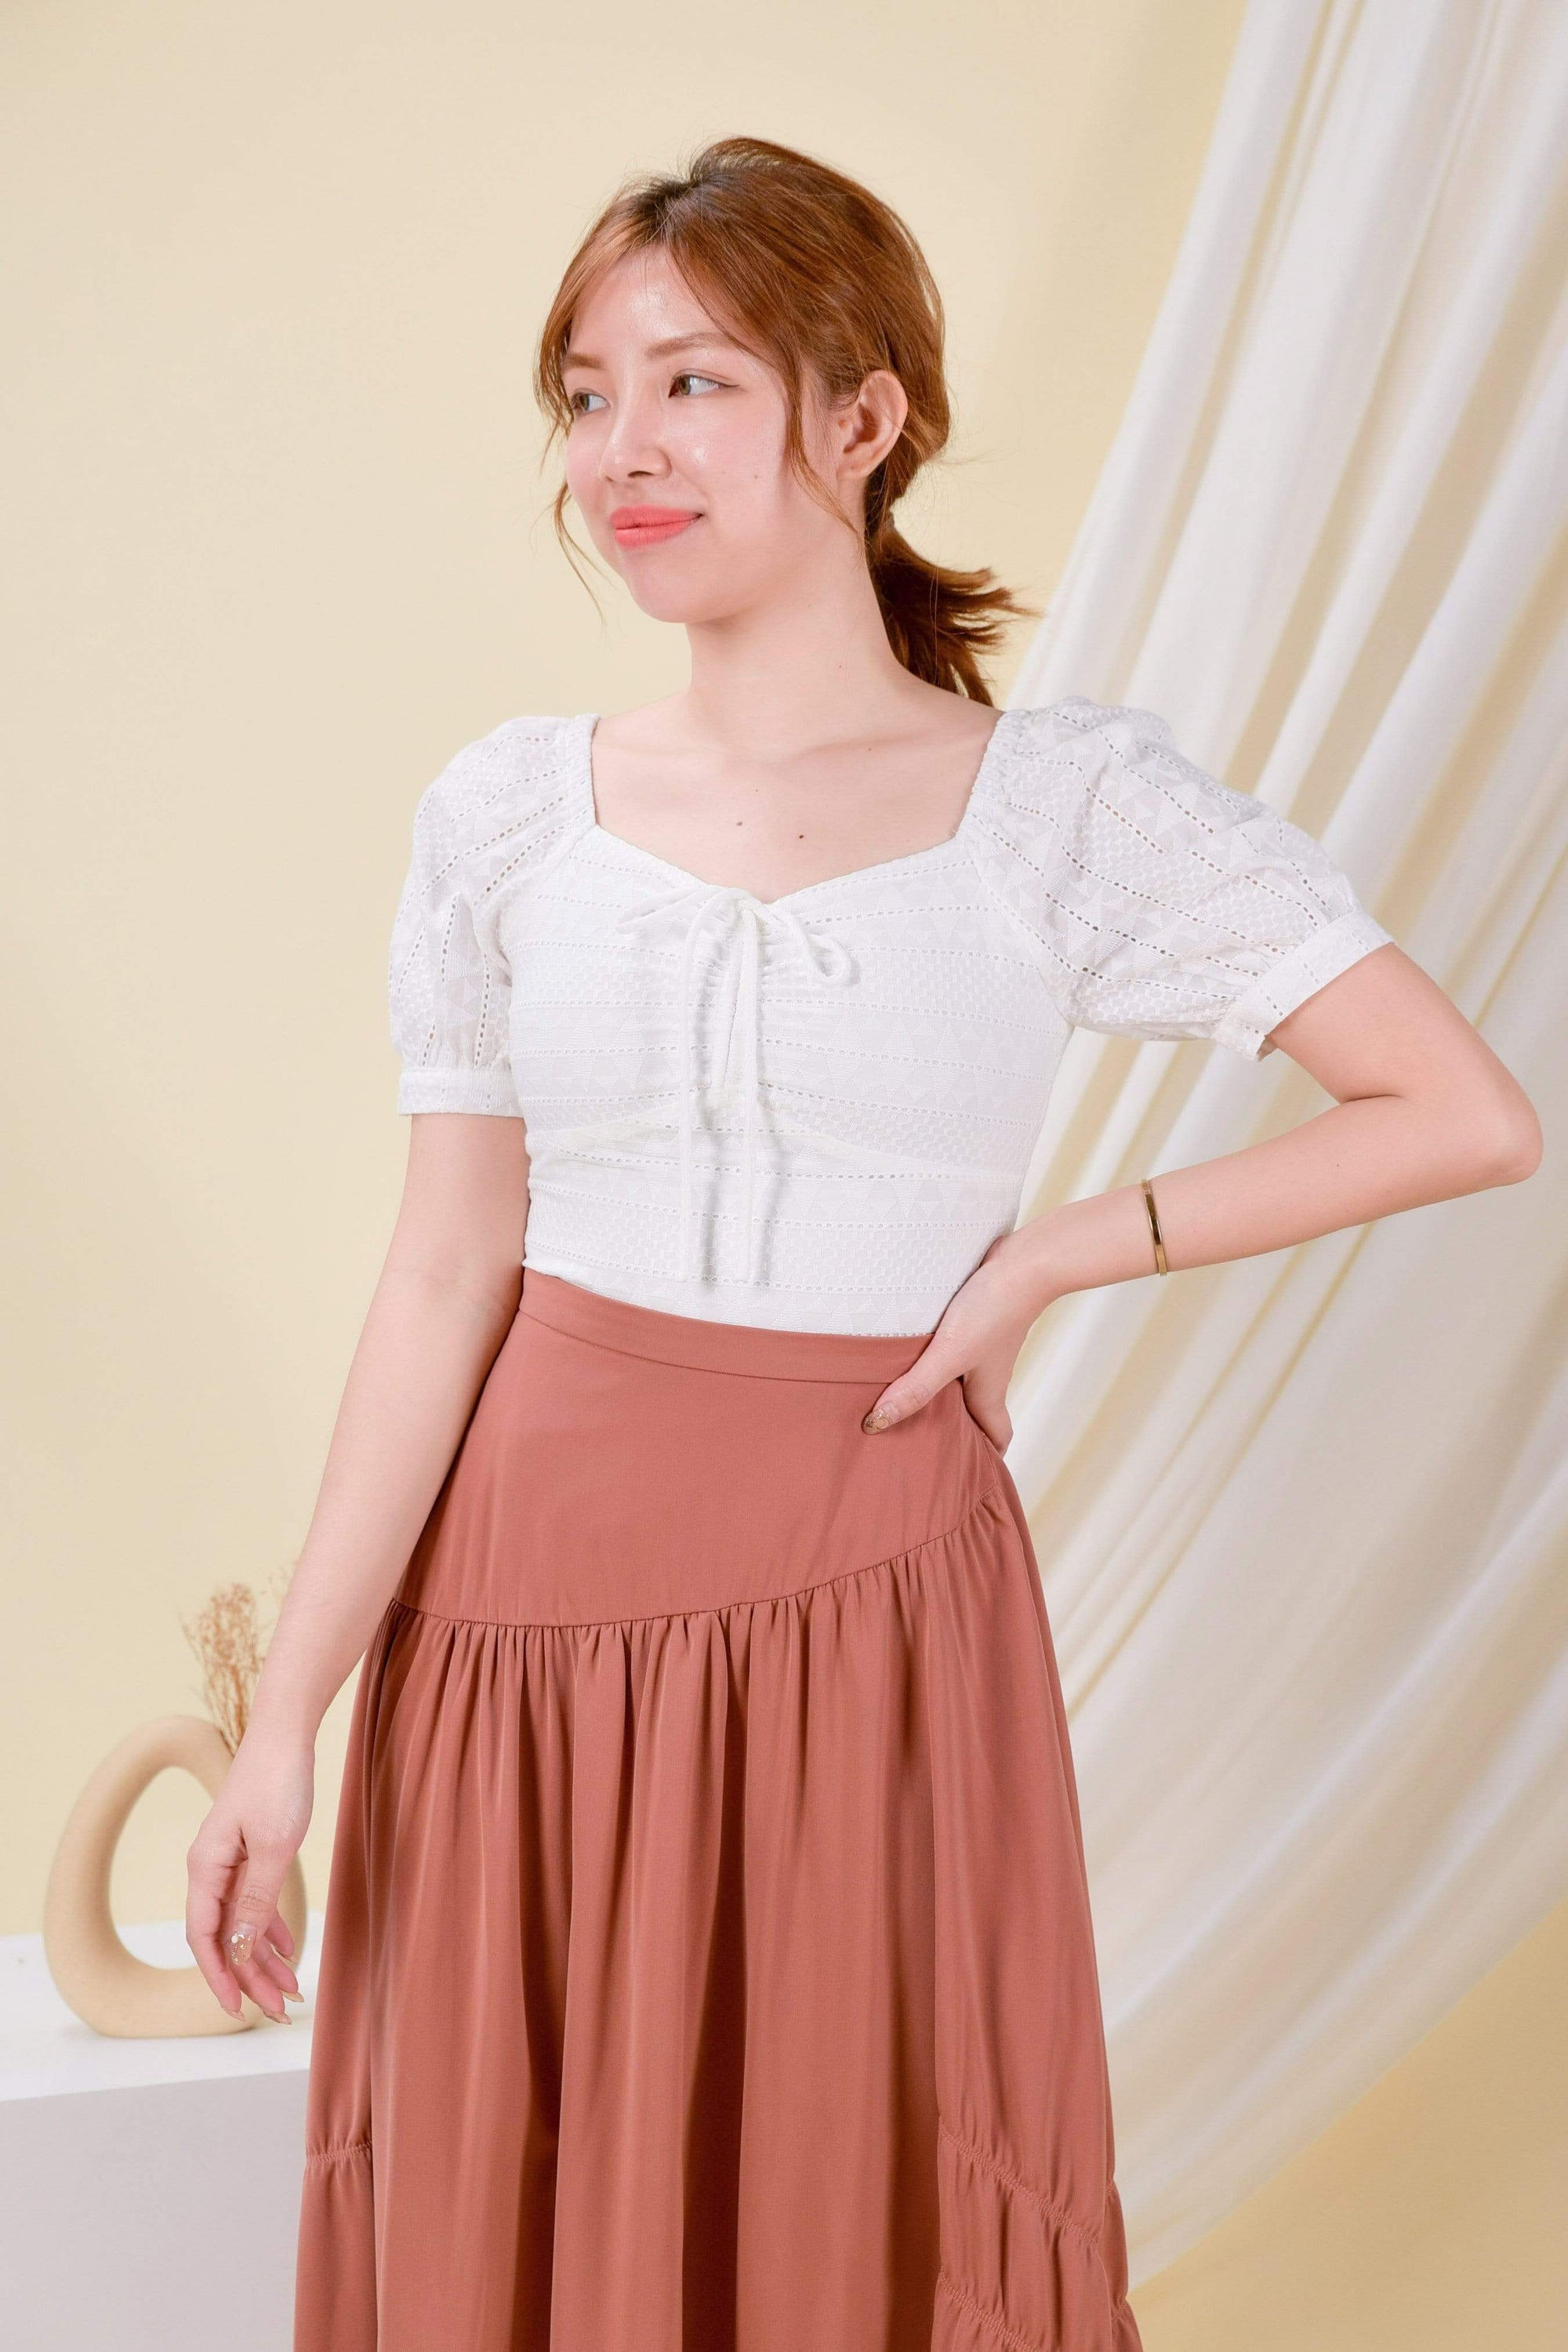 AWE Tops JANAE EYELET TOP IN WHITE